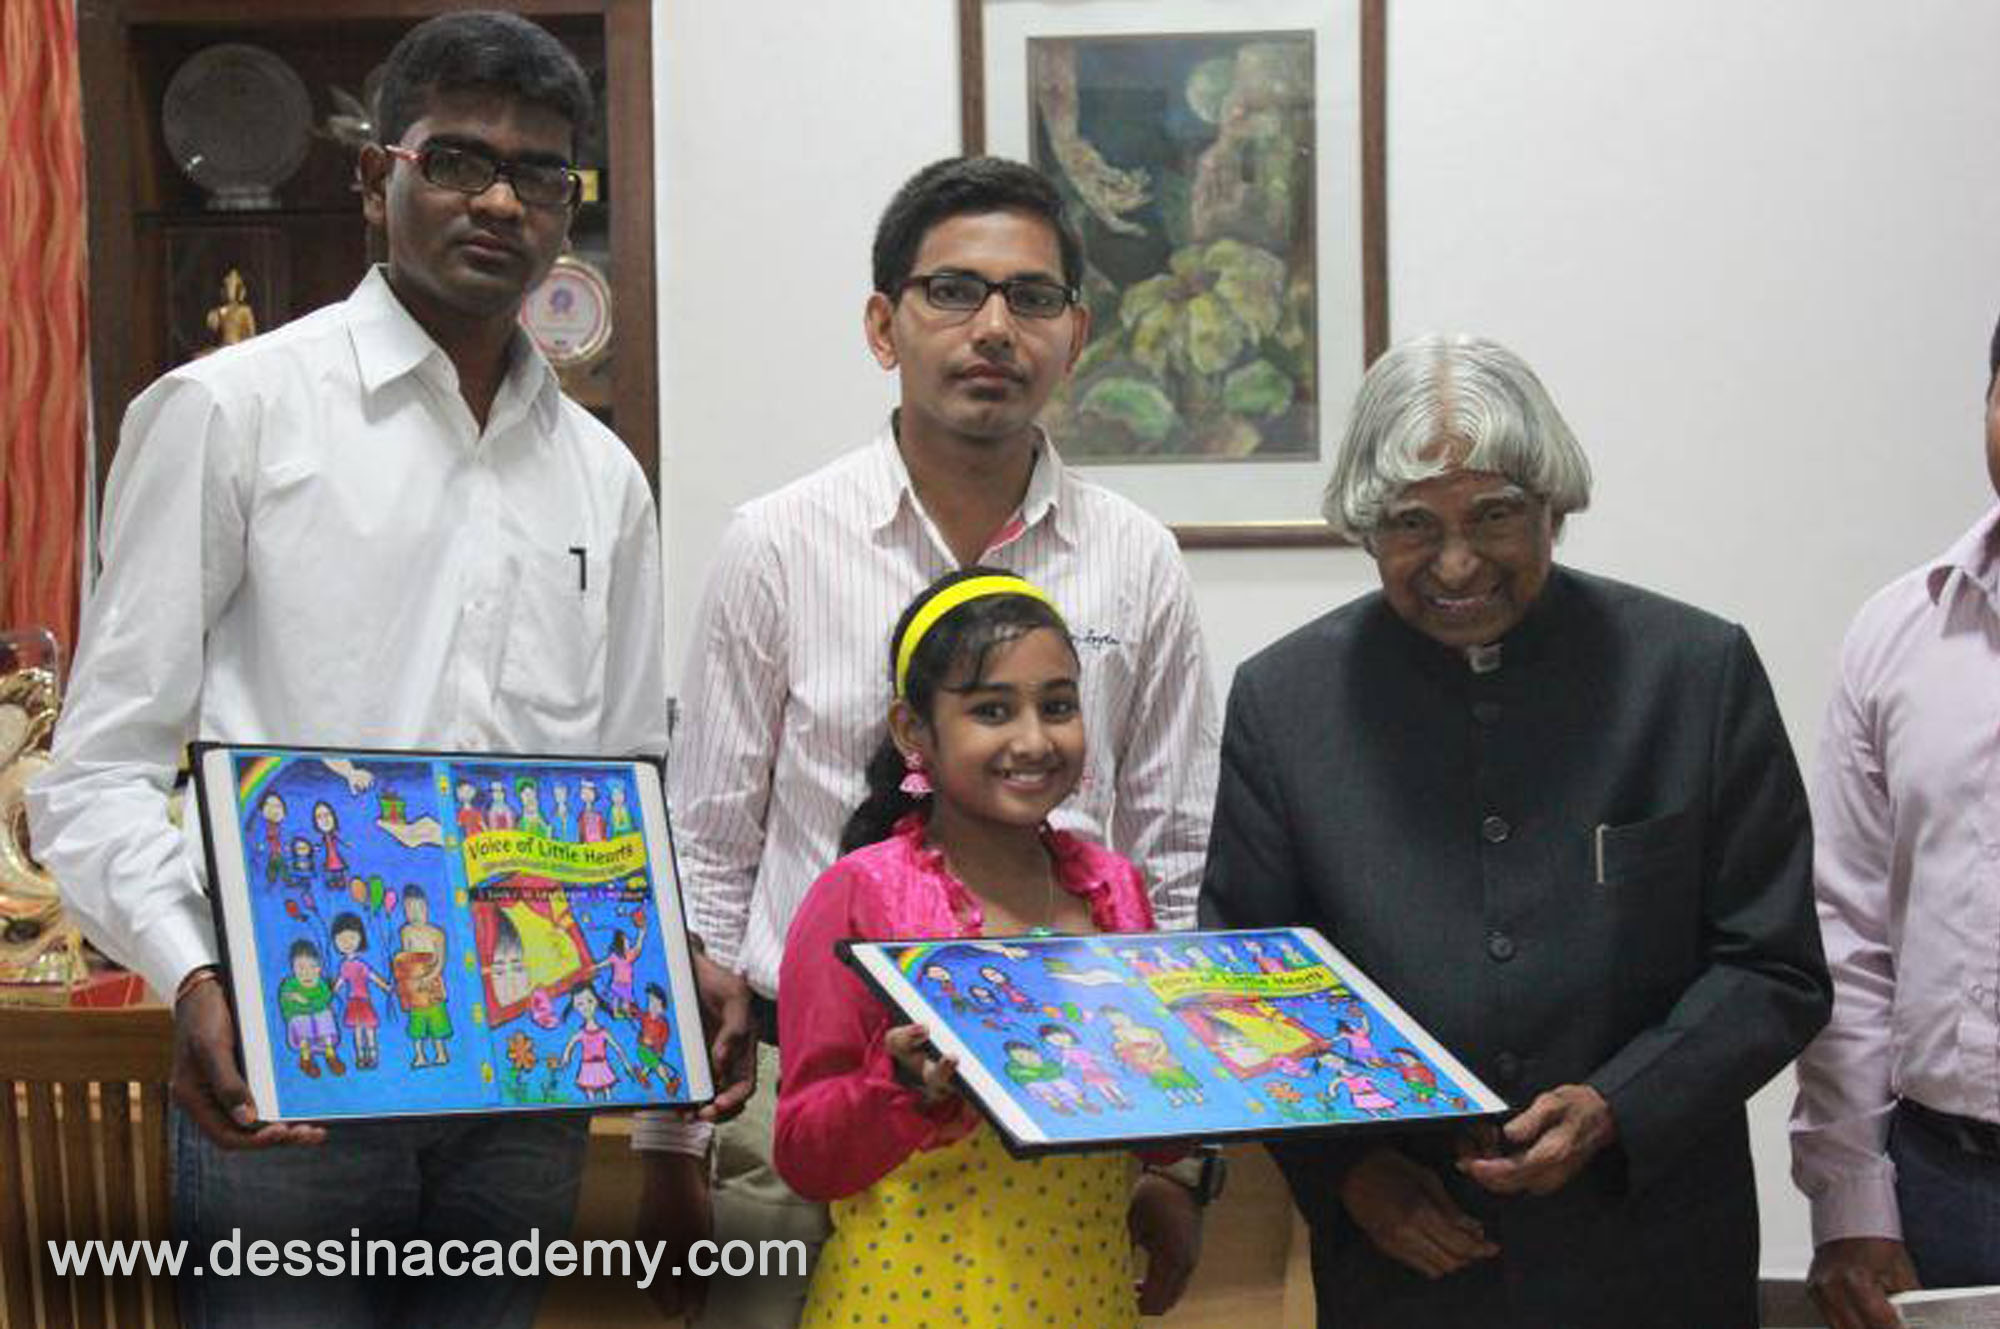 Dessin School of Arts Students Acheivement 1, Dessin School of Arts, Pencil Drawing classes in Velachery